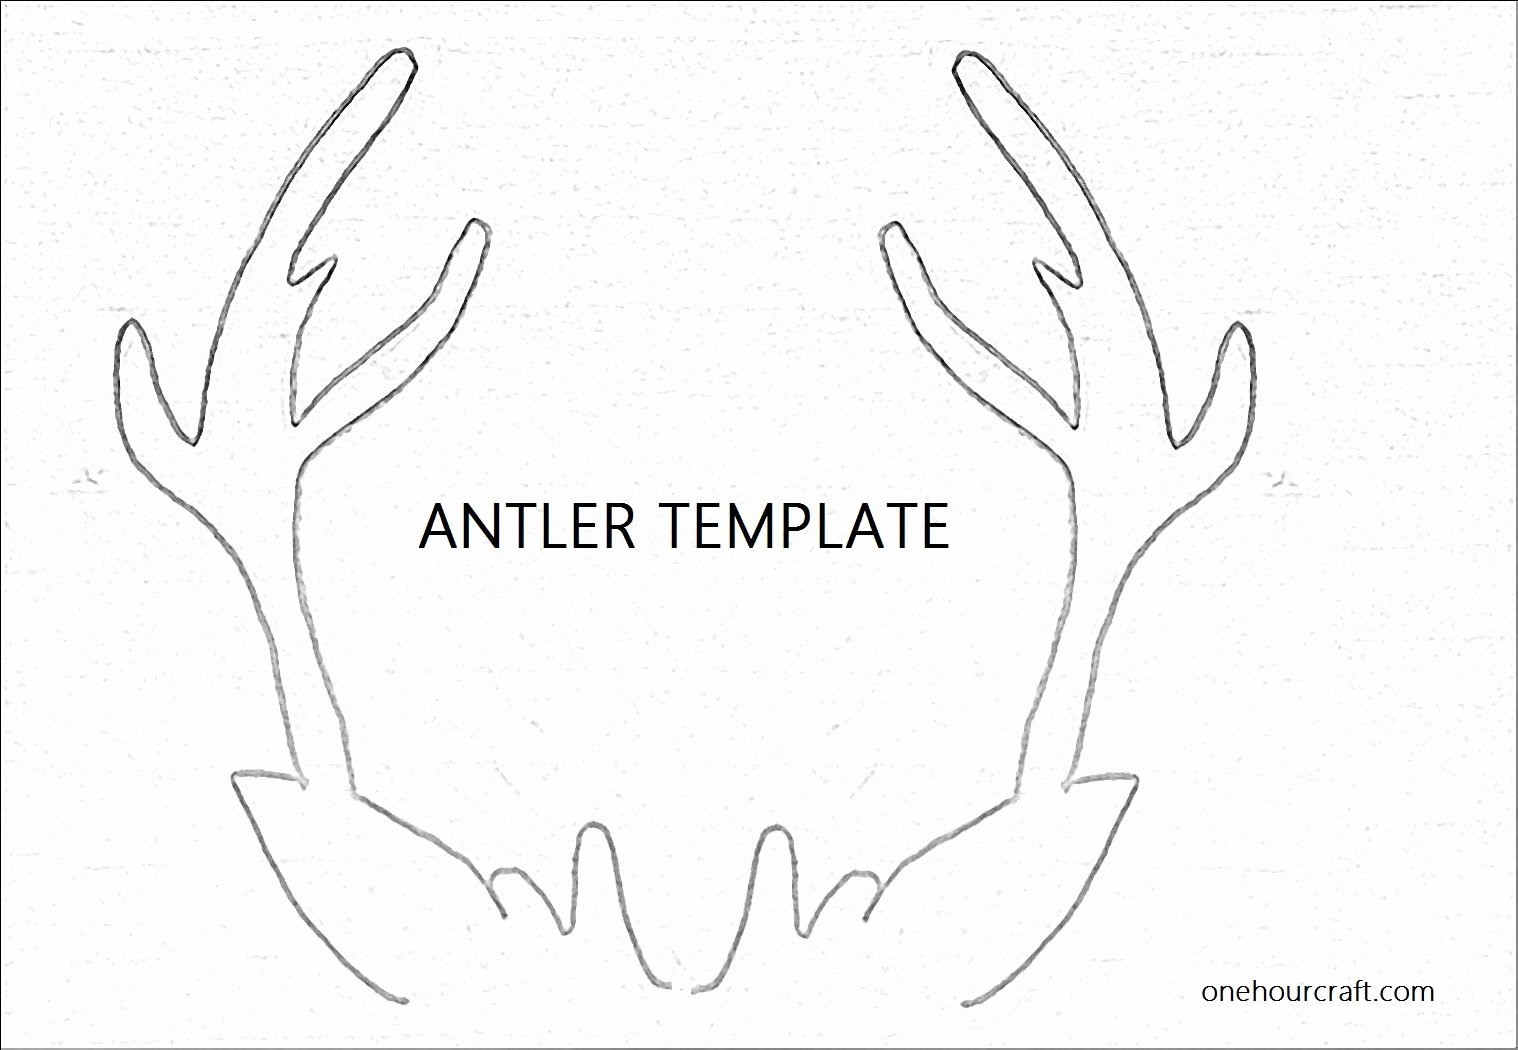 Deer Antler Printable Template Elegant Antler Template for Christmas Card at Onehourcraft